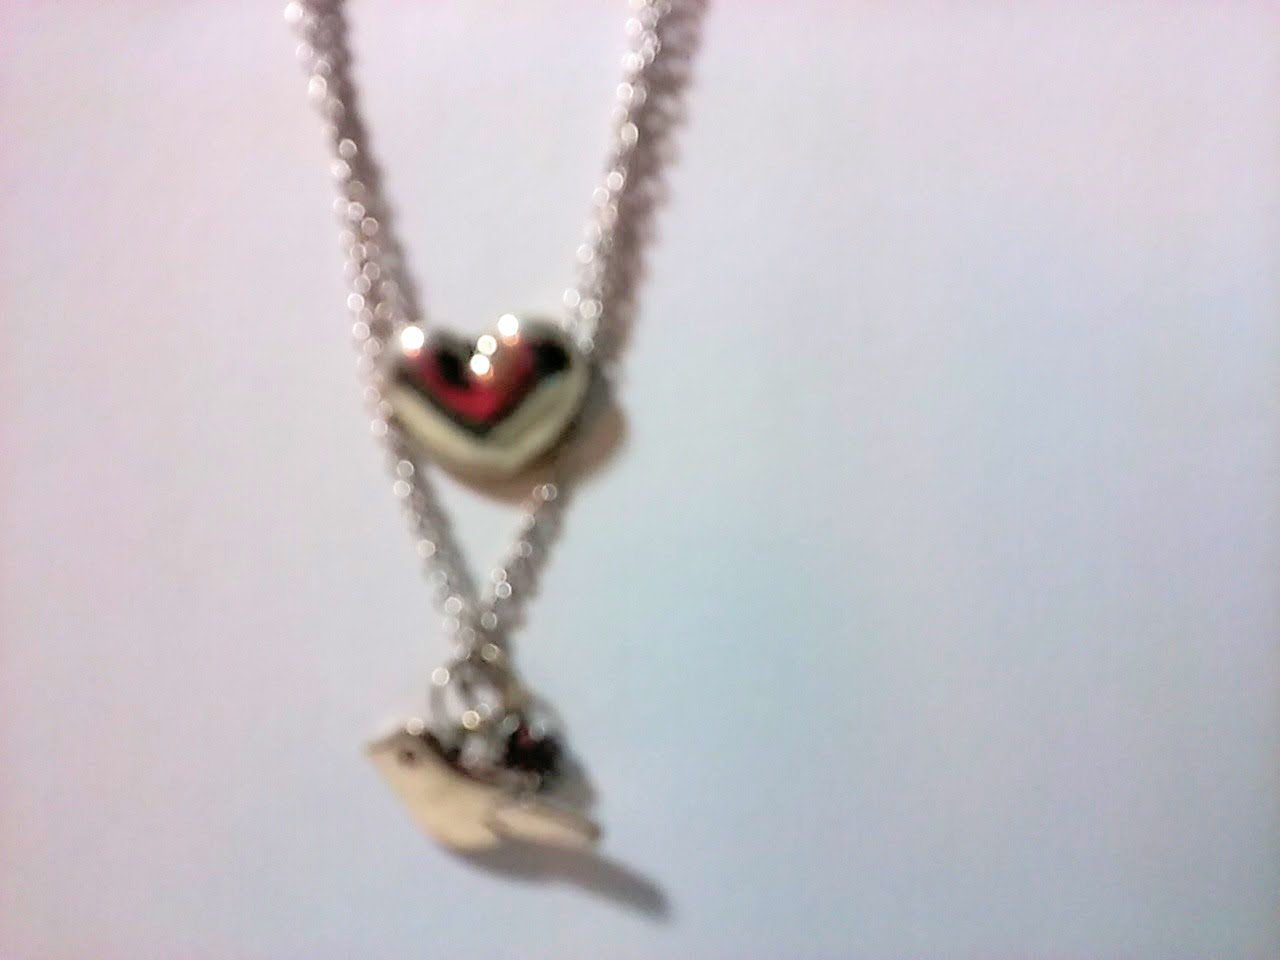 Antique style necklace with a bird and heart charms 18 INCH CHAIN